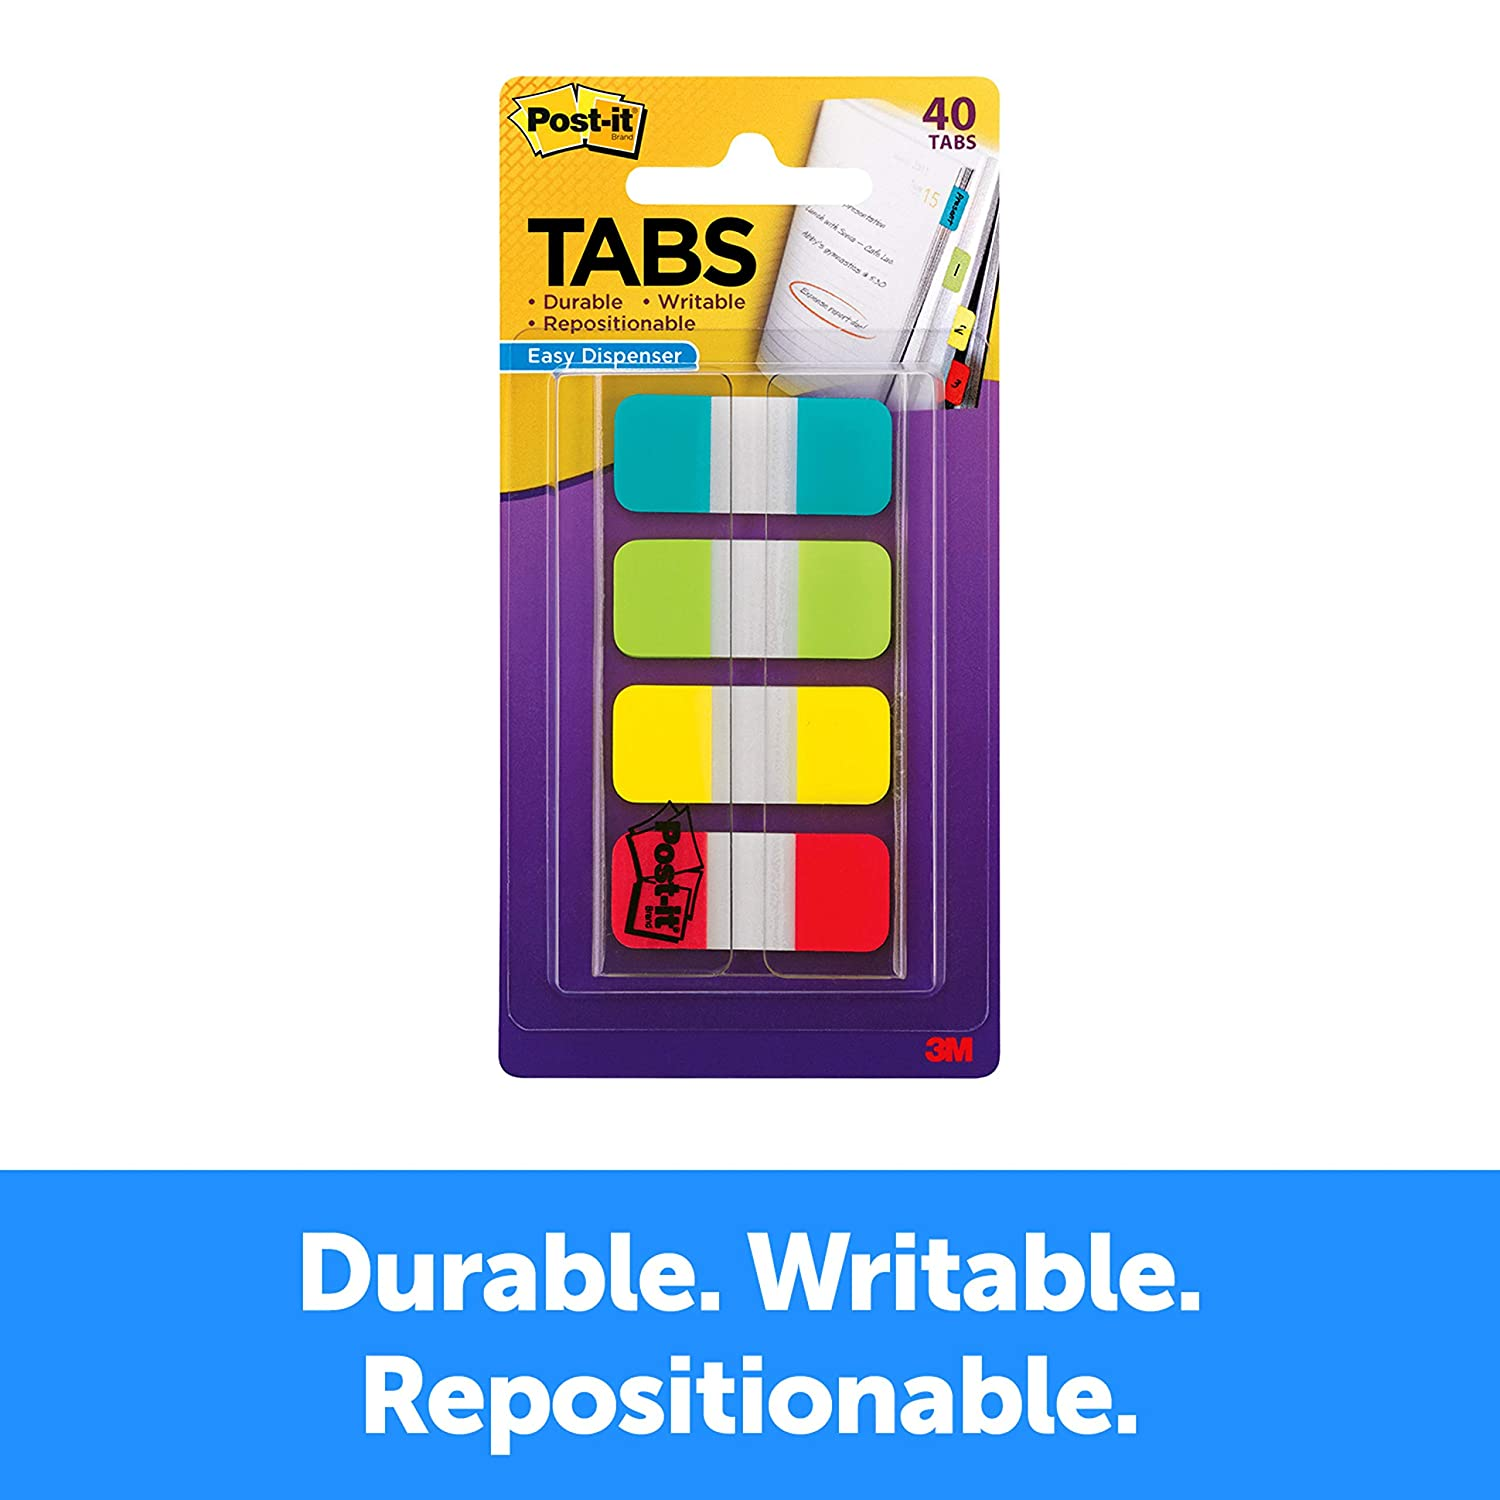 Post-it Tabs.625 in. Solid, Aqua, Lime, Yellow, Red, Durable, Writable, Repositionable, Sticks Securely, Removes Cleanly, 10/Color, 40/Dispenser, (676-ALYR)